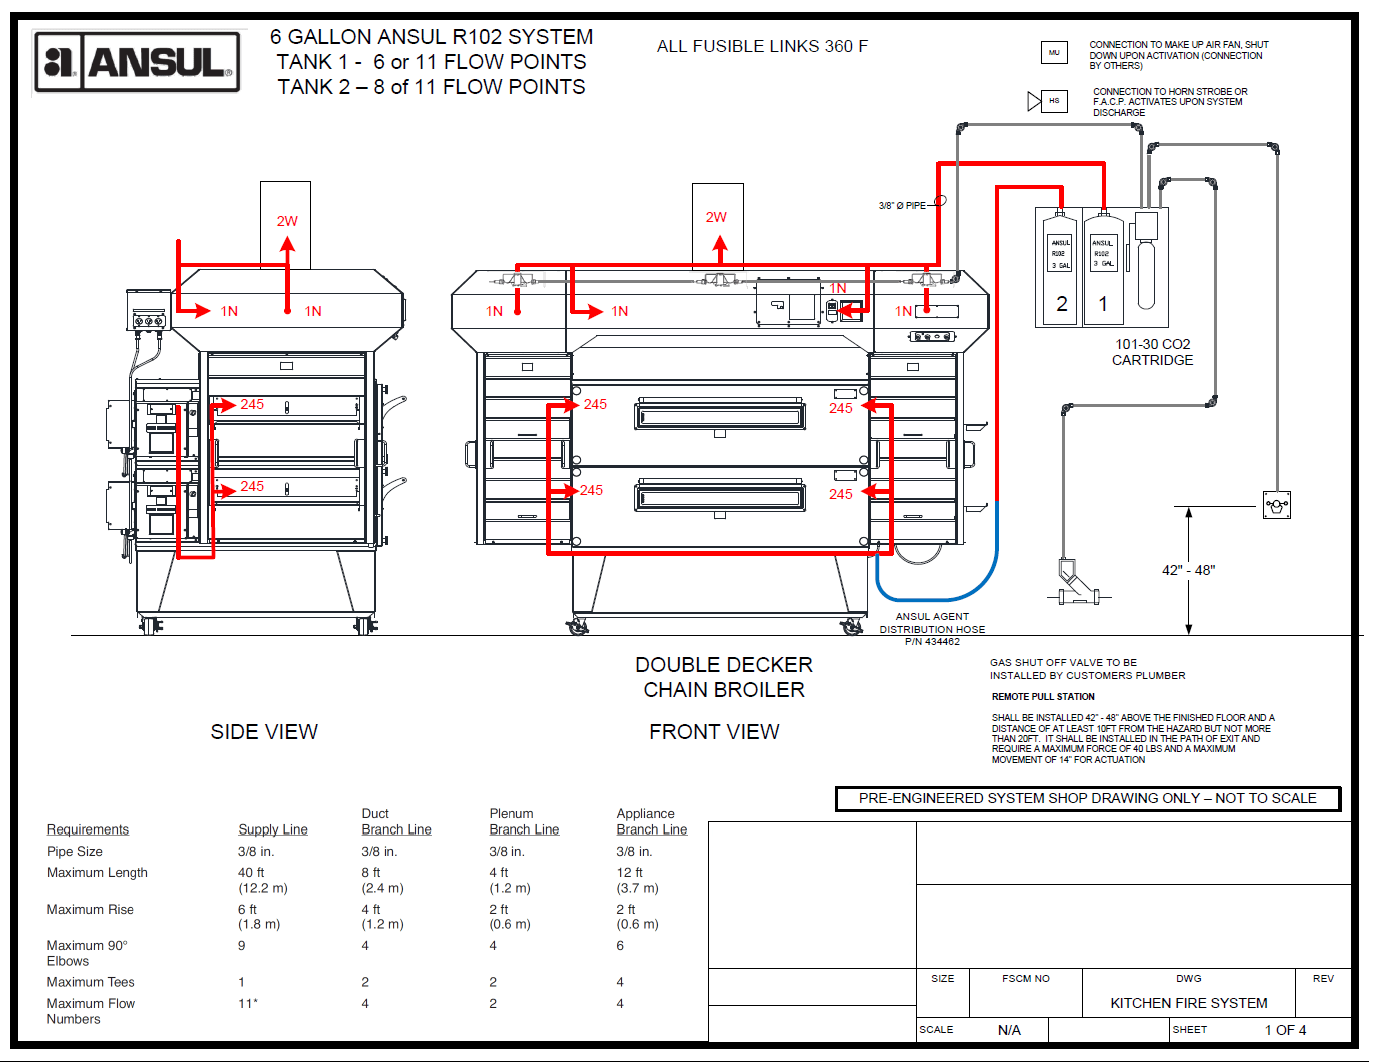 Ansul System Wiring 48385 besides Fire Suppression System Wiring Diagram besides Co2 Ph Diagram further Lego Power Functions Wiring Diagram together with Electric Fryer Wiring Diagram. on ansul r 102 wiring diagram